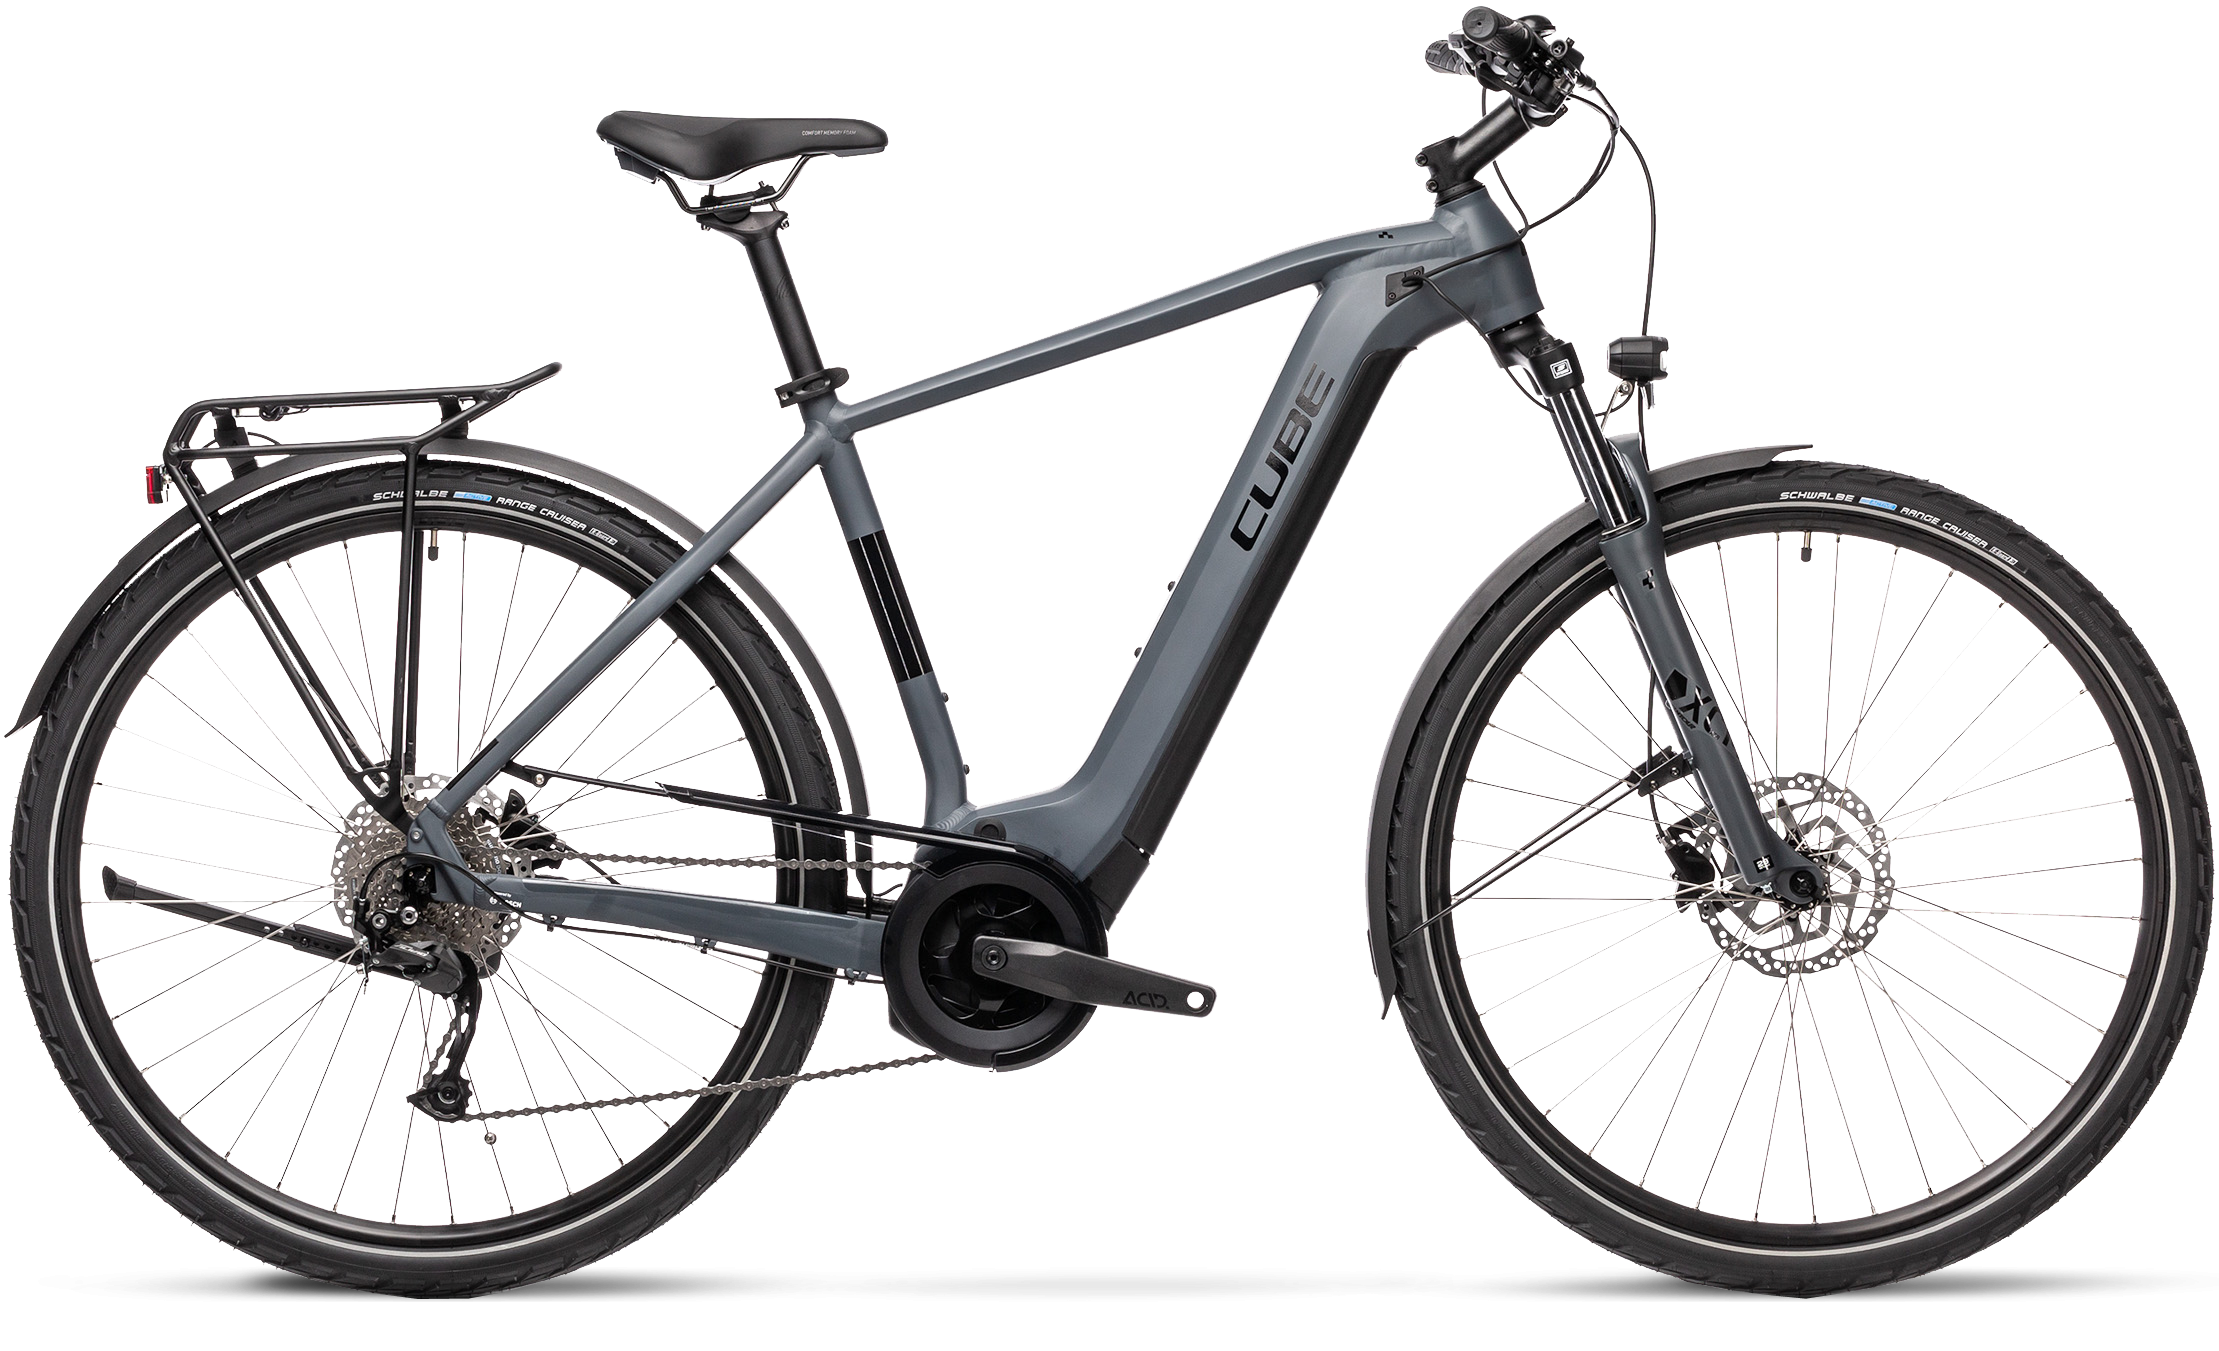 https://w8w5m3f8.stackpathcdn.com/23442/vtc-electrique-cube-touring-hybrid-one-400-500-625wh-cadre-homme.jpg